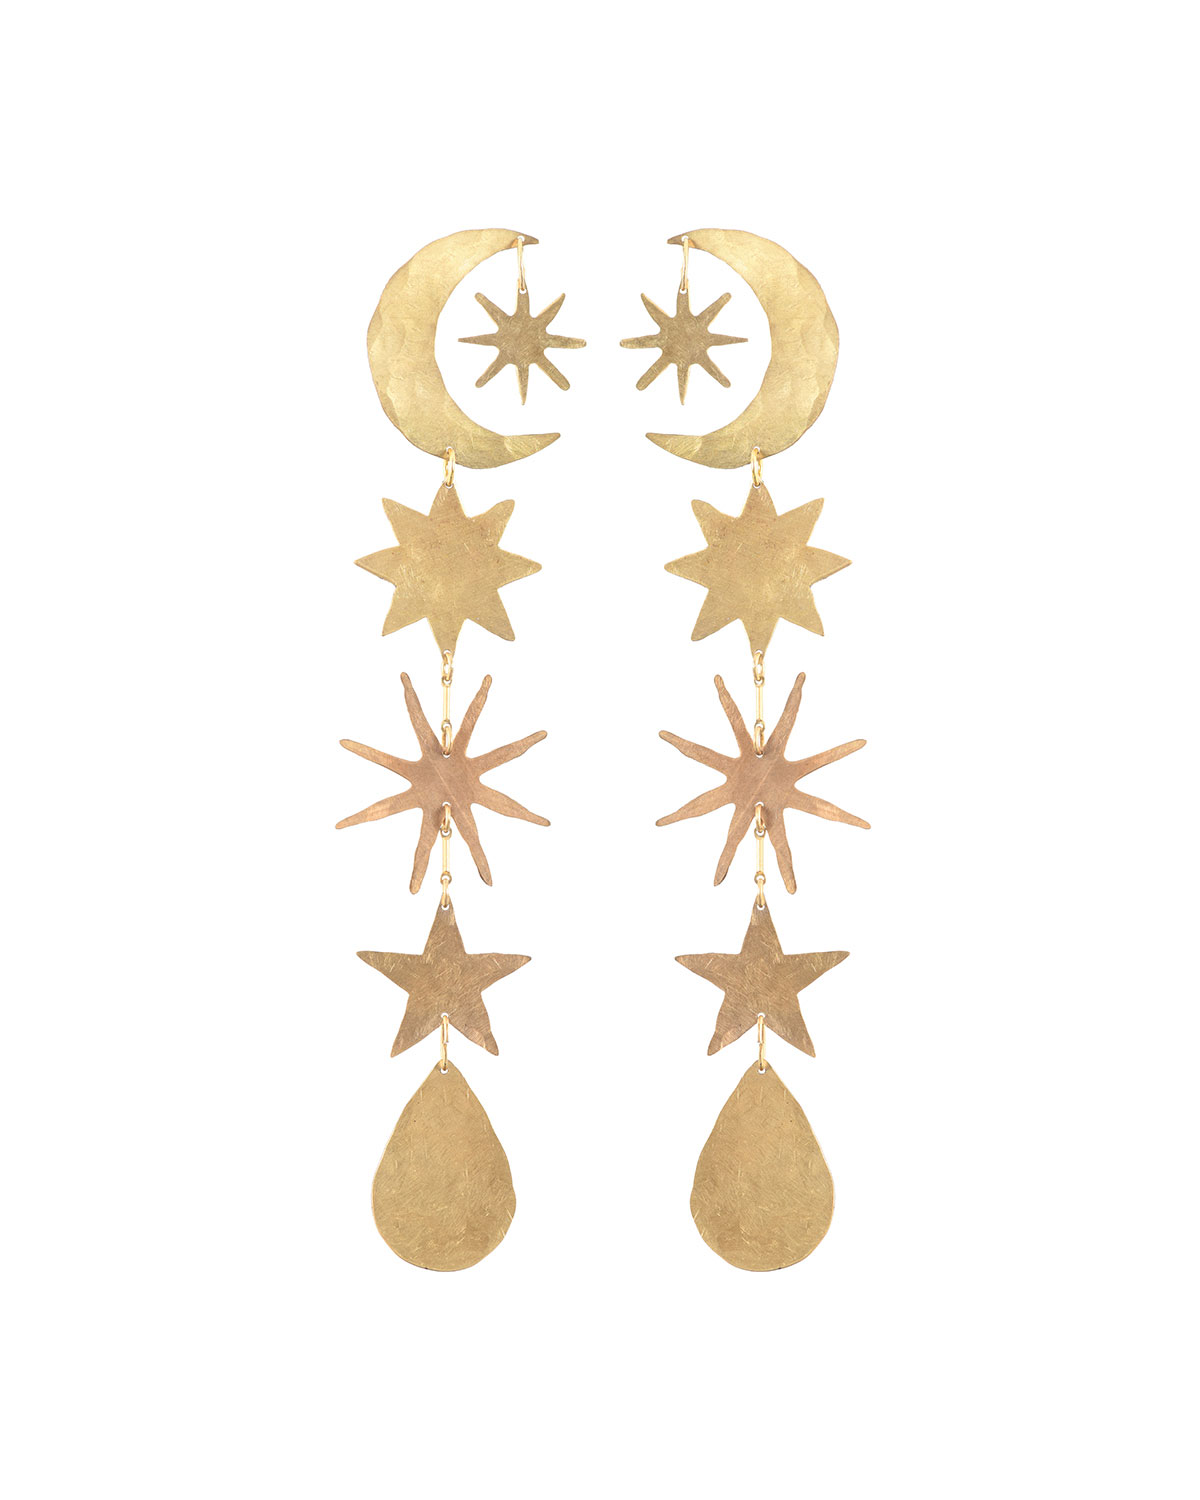 We Dream in Colour Hour-Long Celestial Earrings